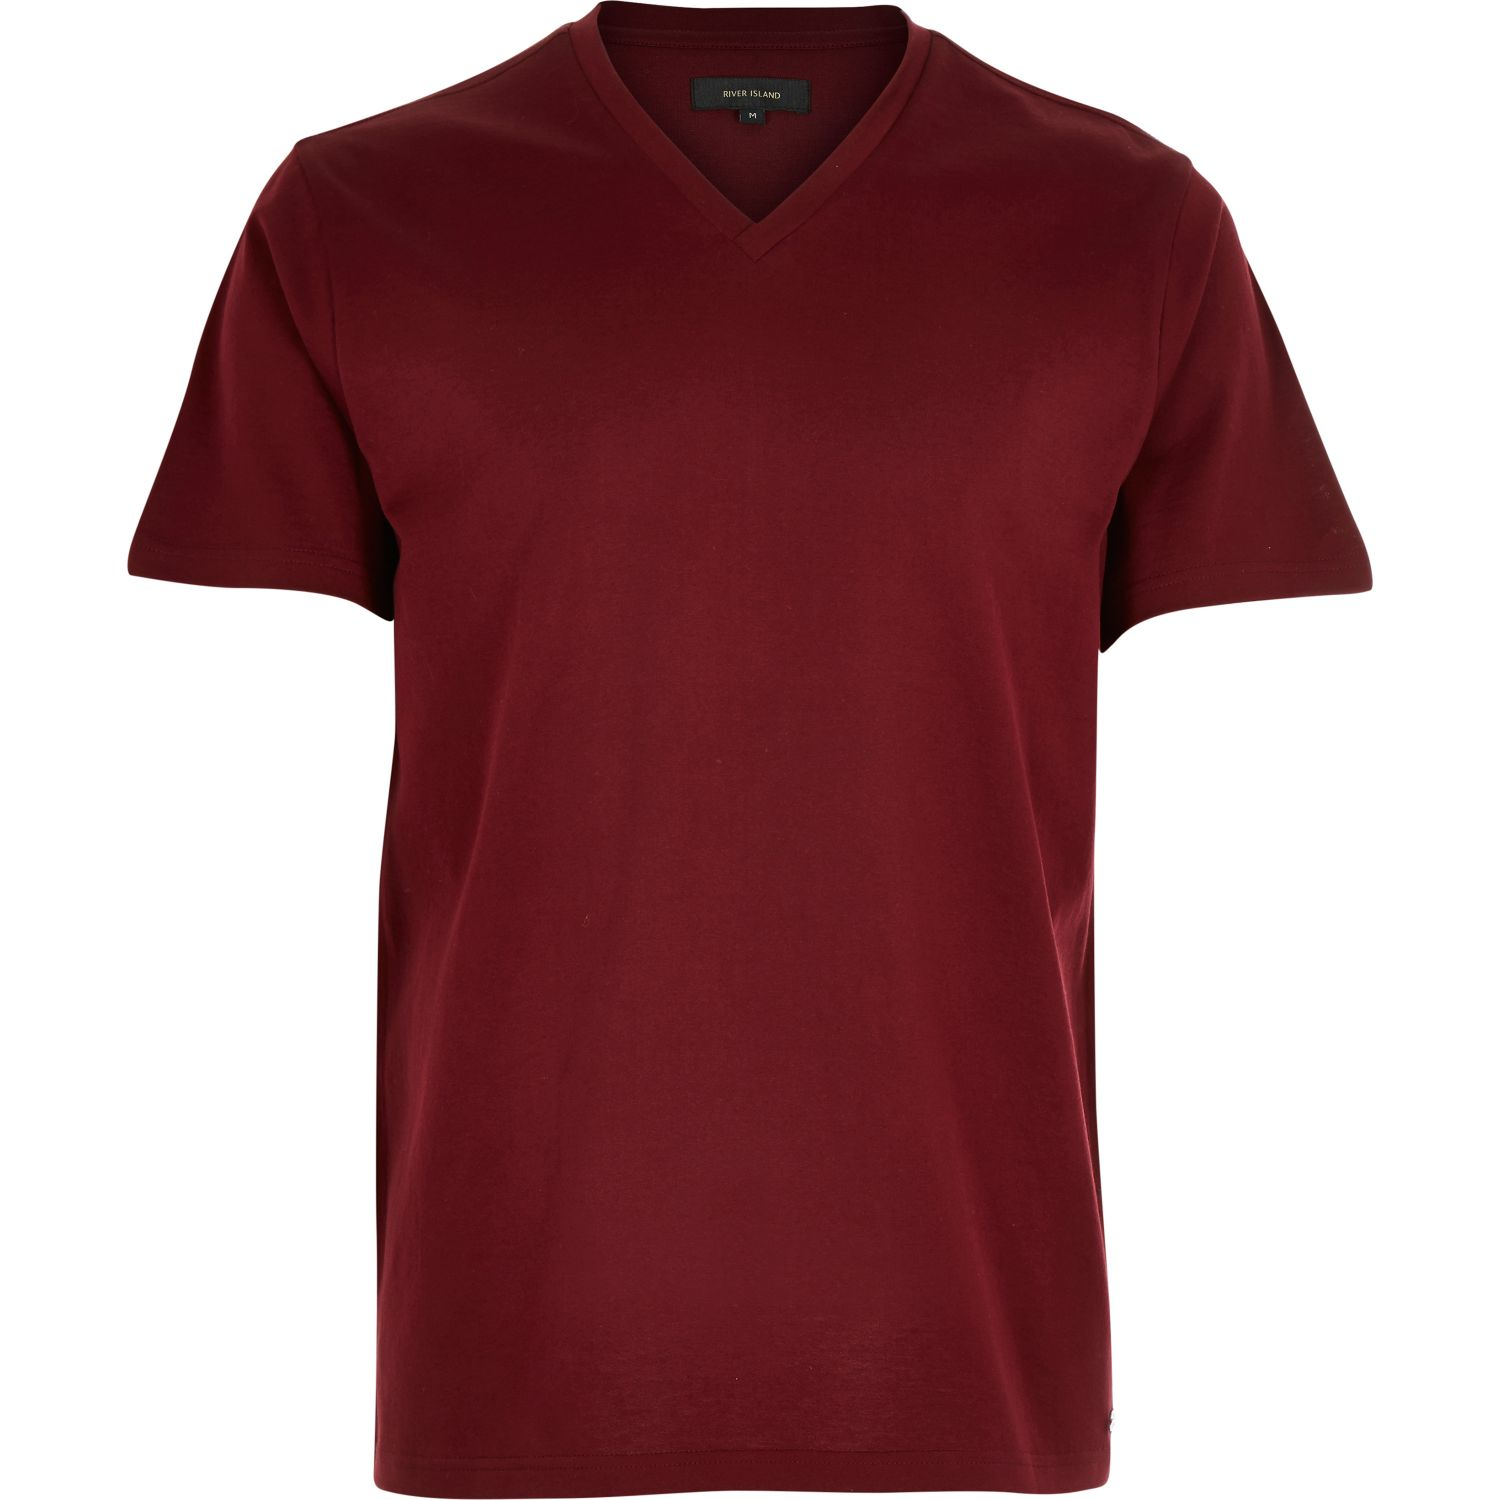 River island dark red premium v neck t shirt in red for for The red t shirt company